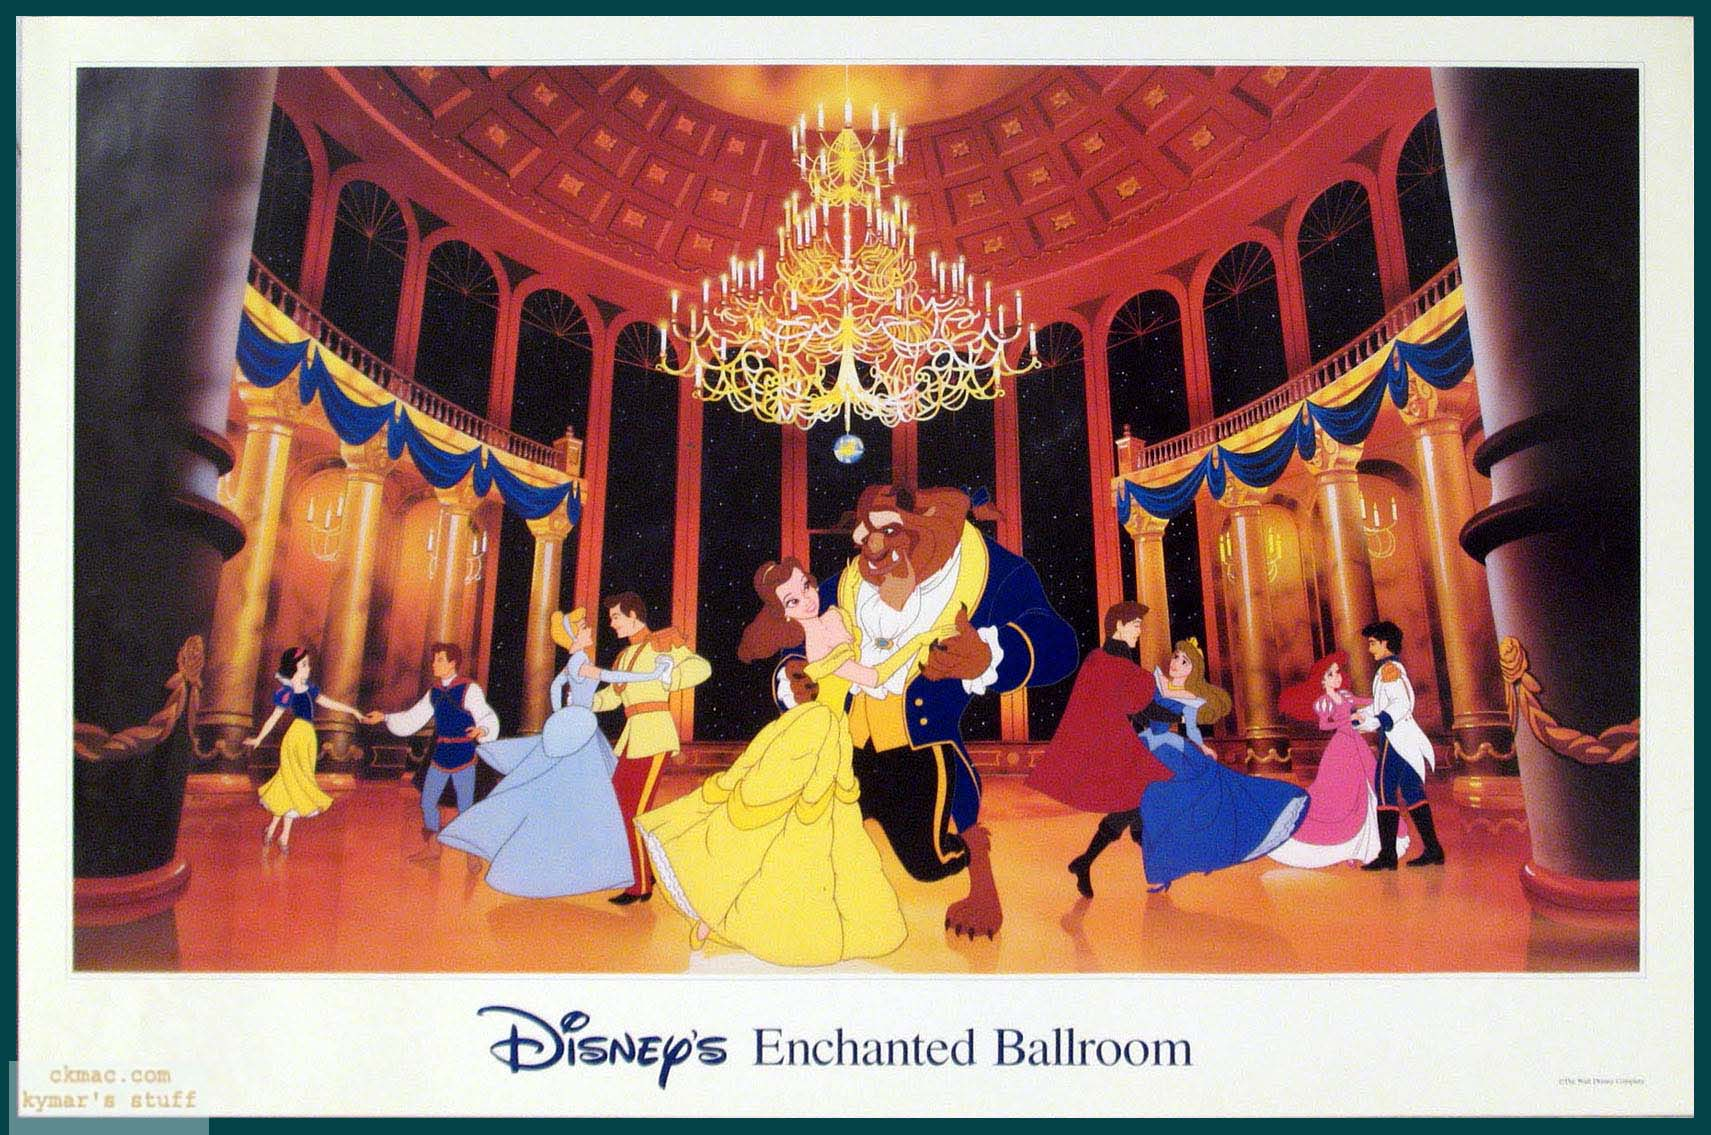 Disney 39 s enchanted ballroom disney princess photo for Disney princess ballroom wall mural